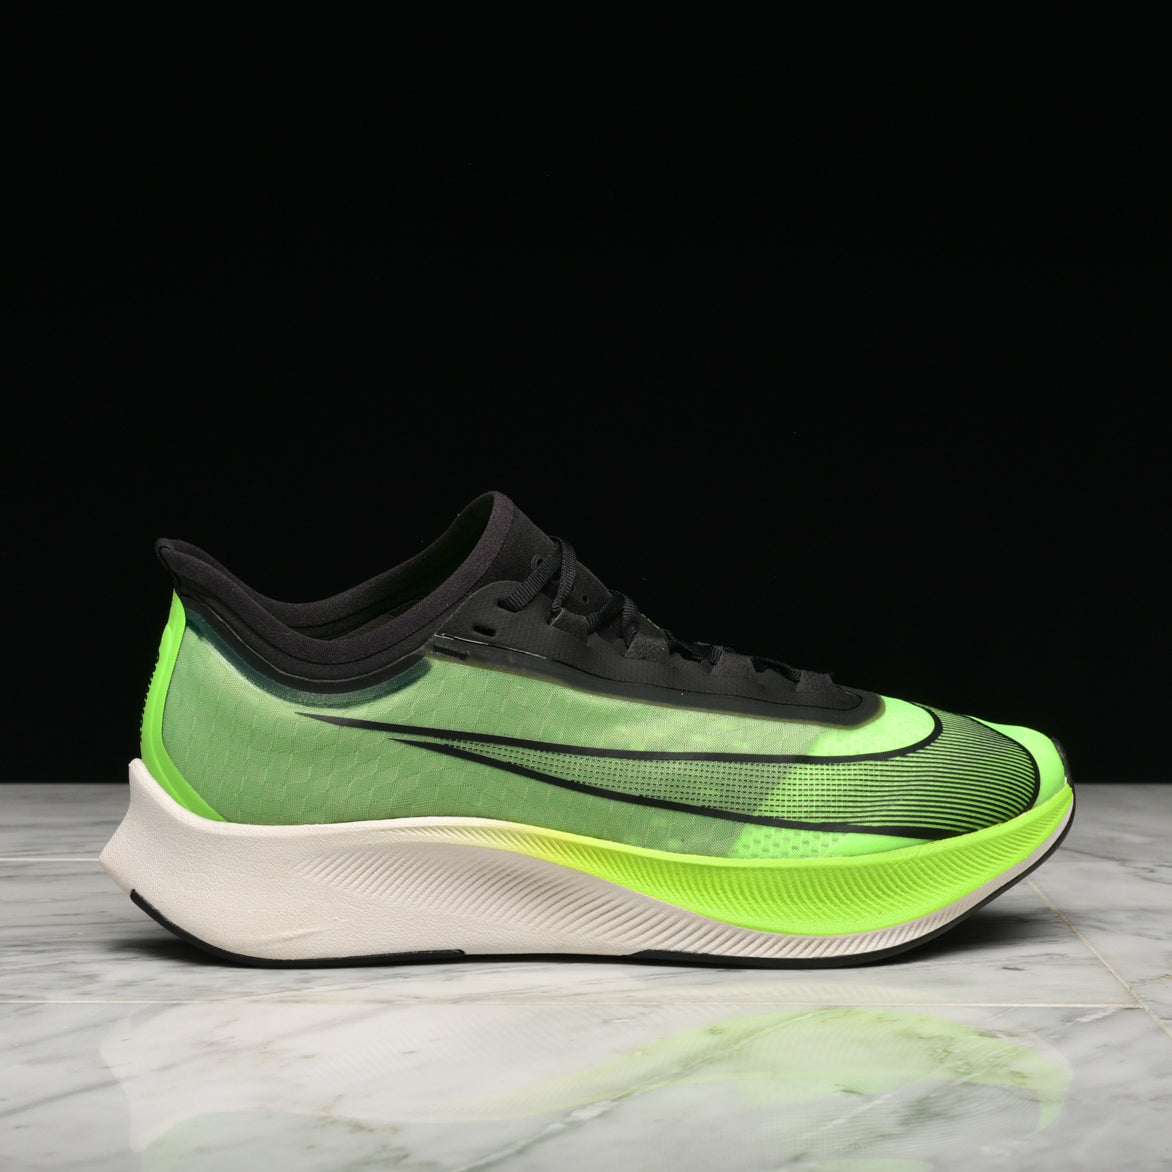 Paternal Personas con discapacidad auditiva densidad  nike zoom fly 3 electric green off 60% - www.siteworxtn.com